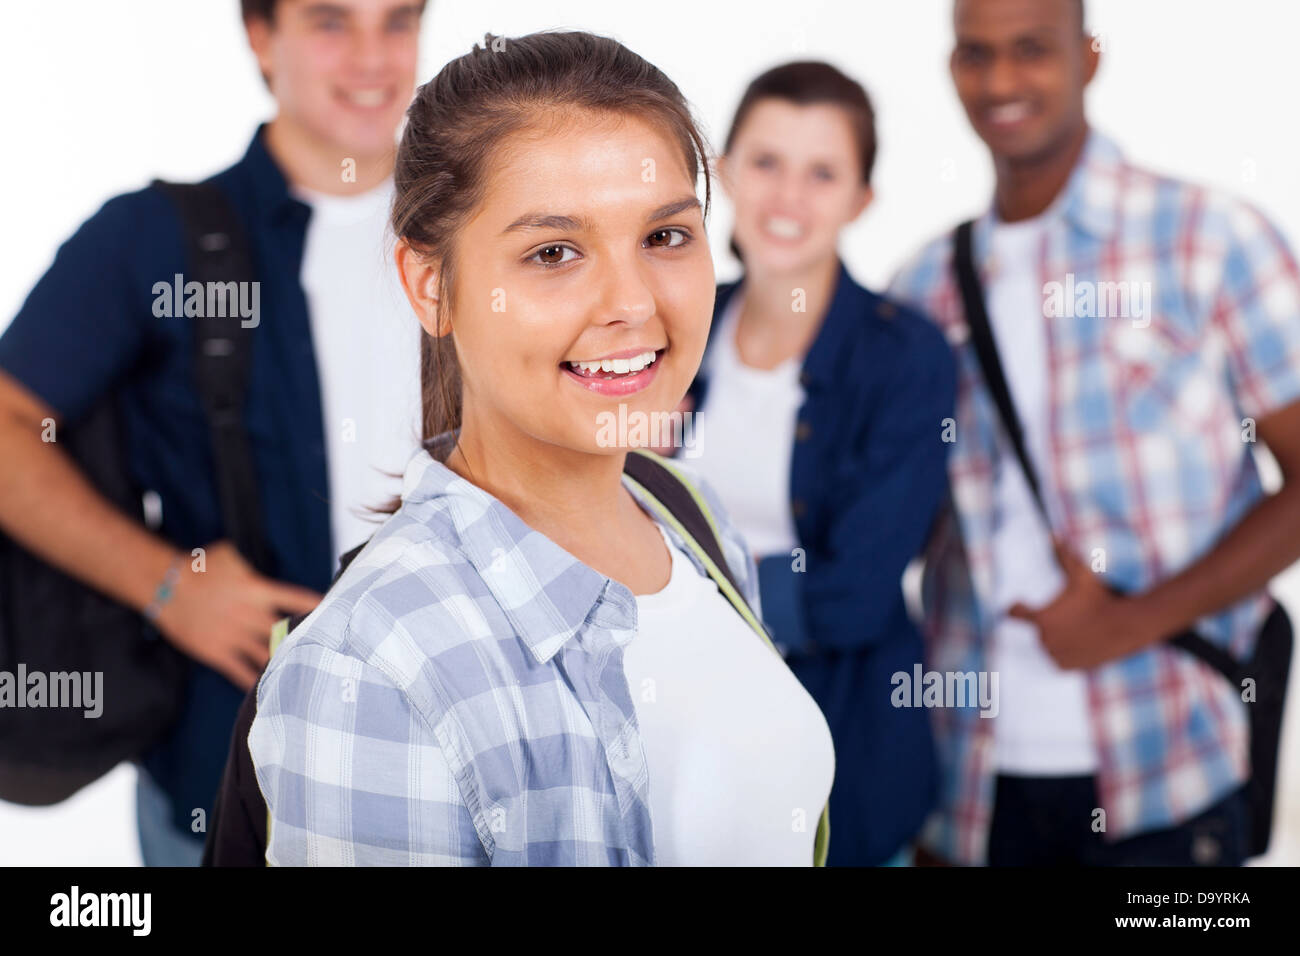 beautiful teenage girl with group of schoolmates over white background - Stock Image